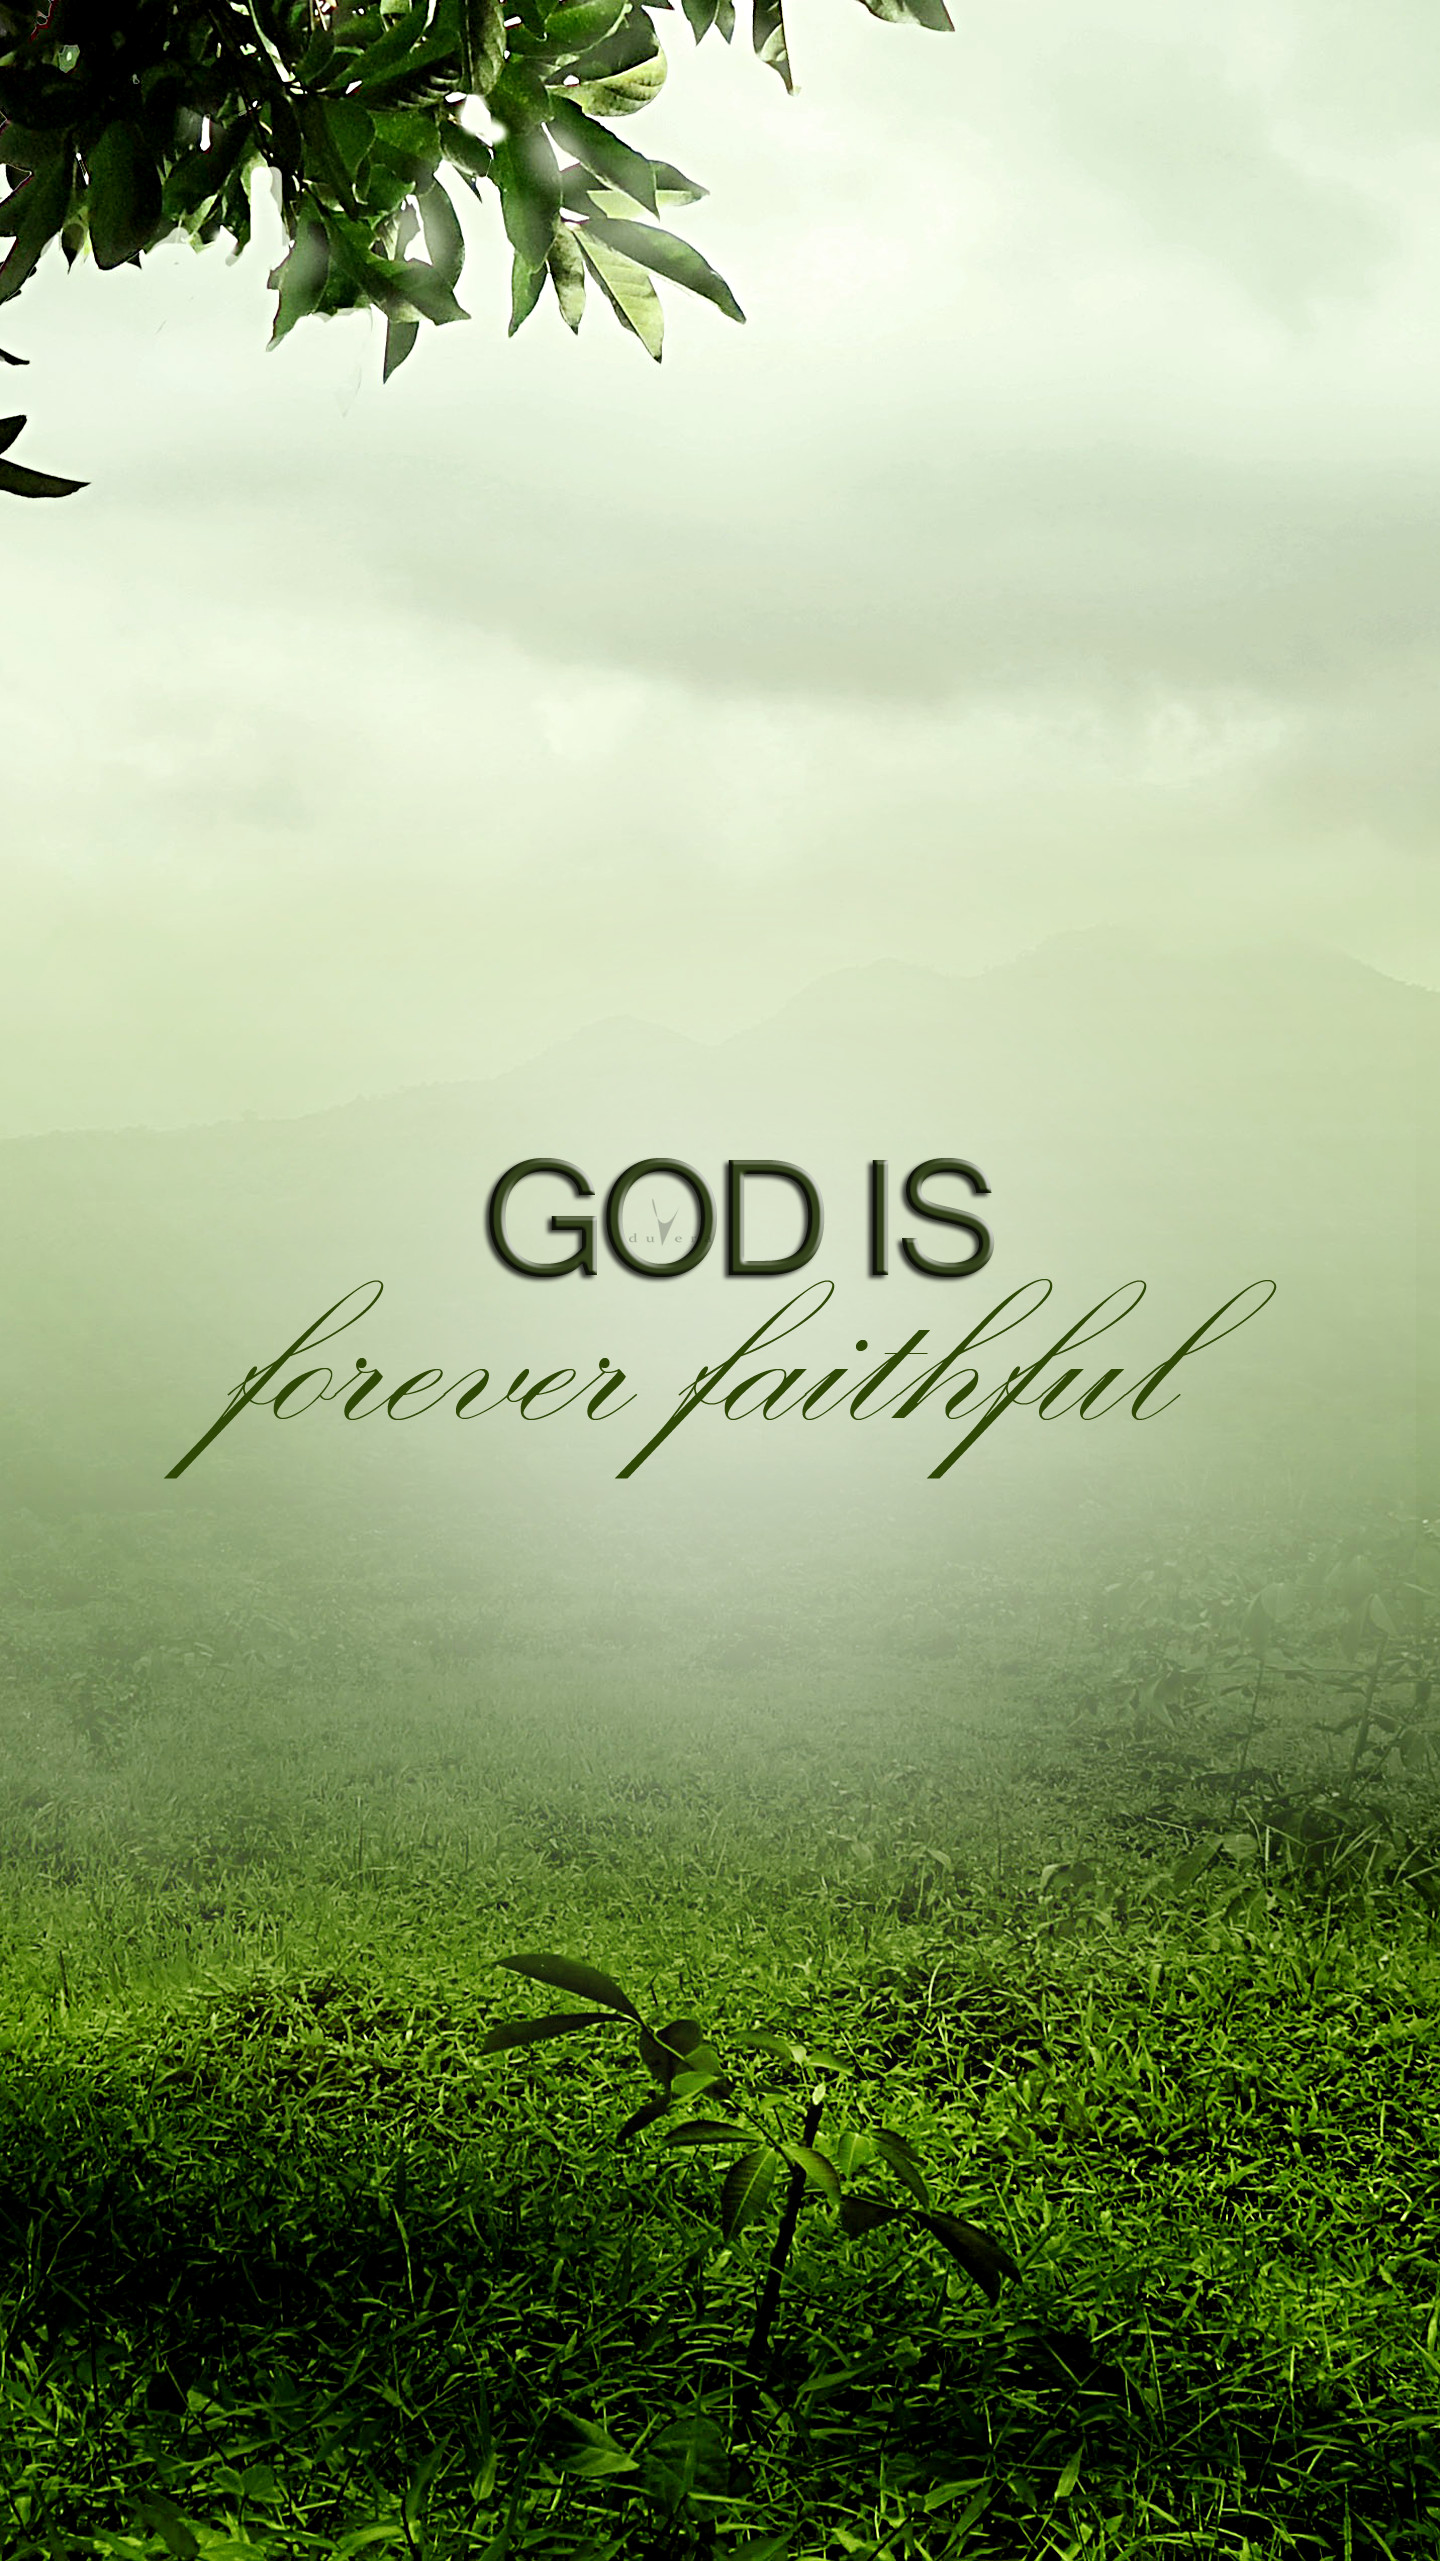 Download Christian Wallpapers For Mobile